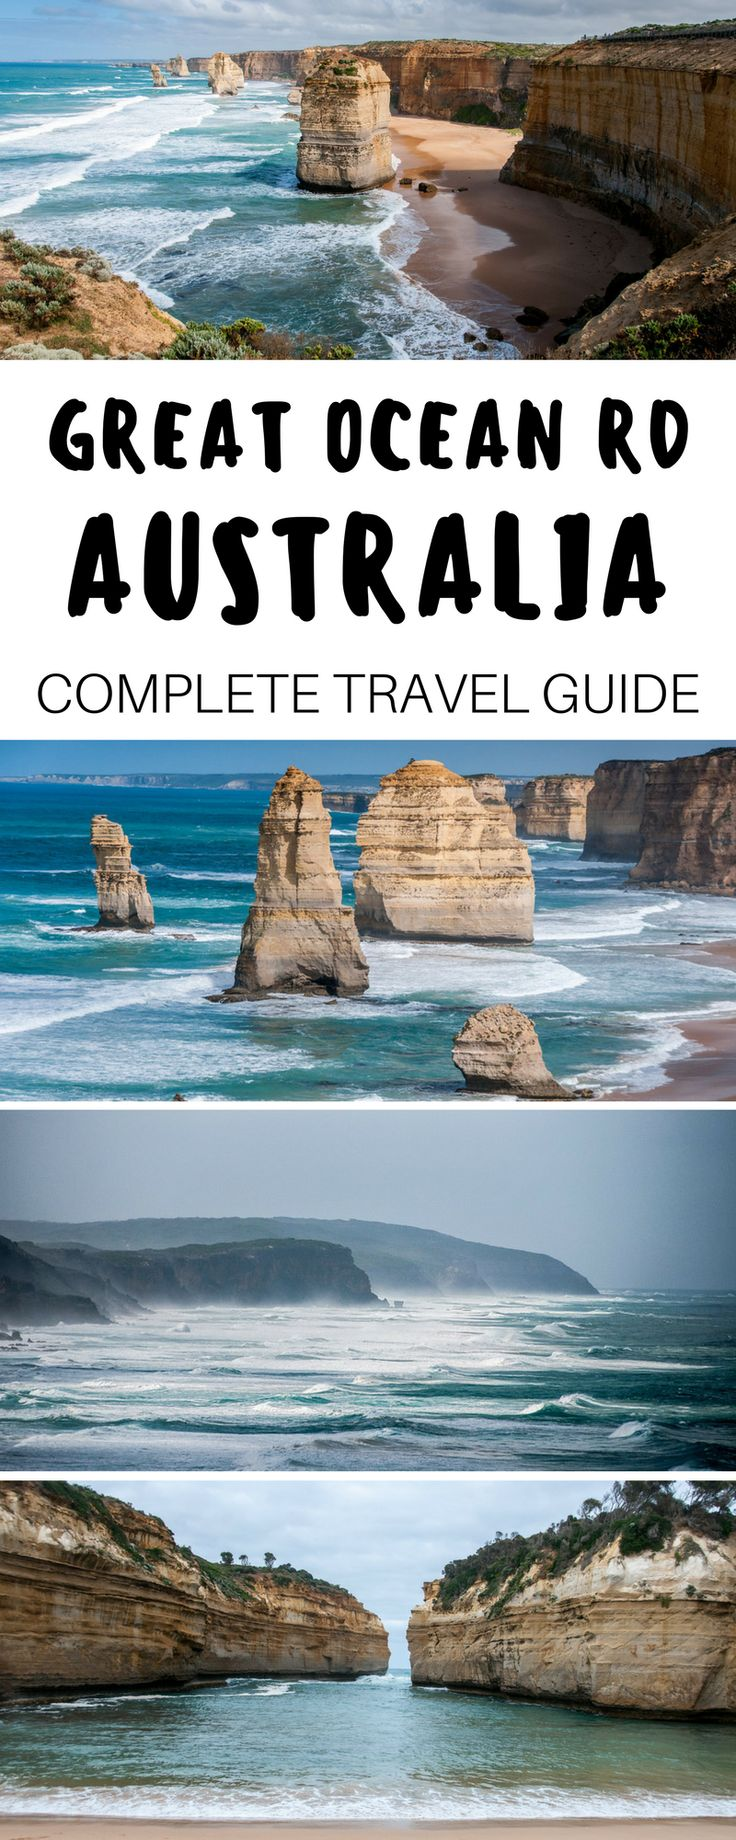 A complete guide to driving the Great Ocean Road in Australia. Highlights and itinerary stops including the Twelve Apostles, London Arch, Loch Ard Gorge and Cape Otway + Practical tips for your trip.   Everything Everywhere Destination Guide #GreatOceanRoad #Australia